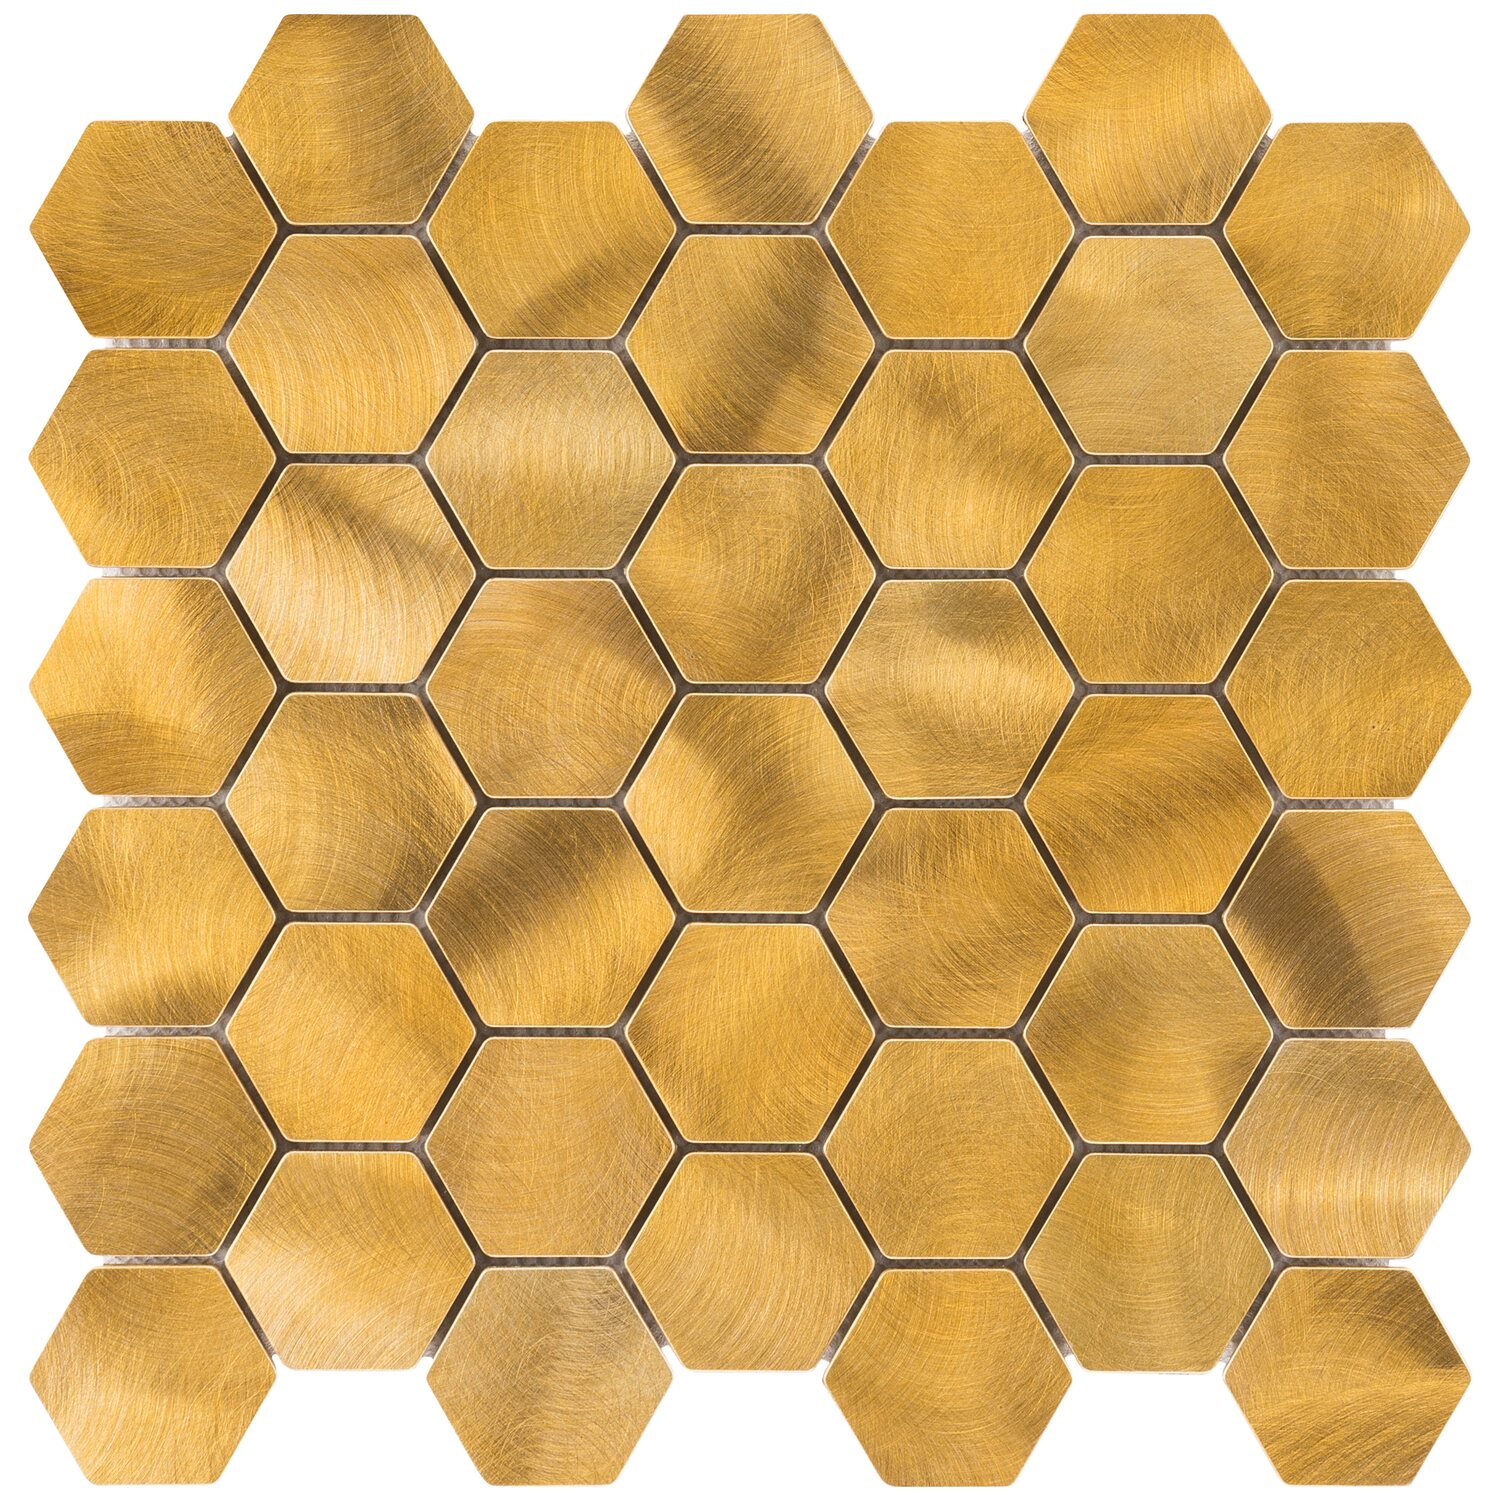 mosaik aluminium gold hexagon 30 cm x 30 cm kaufen bei obi. Black Bedroom Furniture Sets. Home Design Ideas